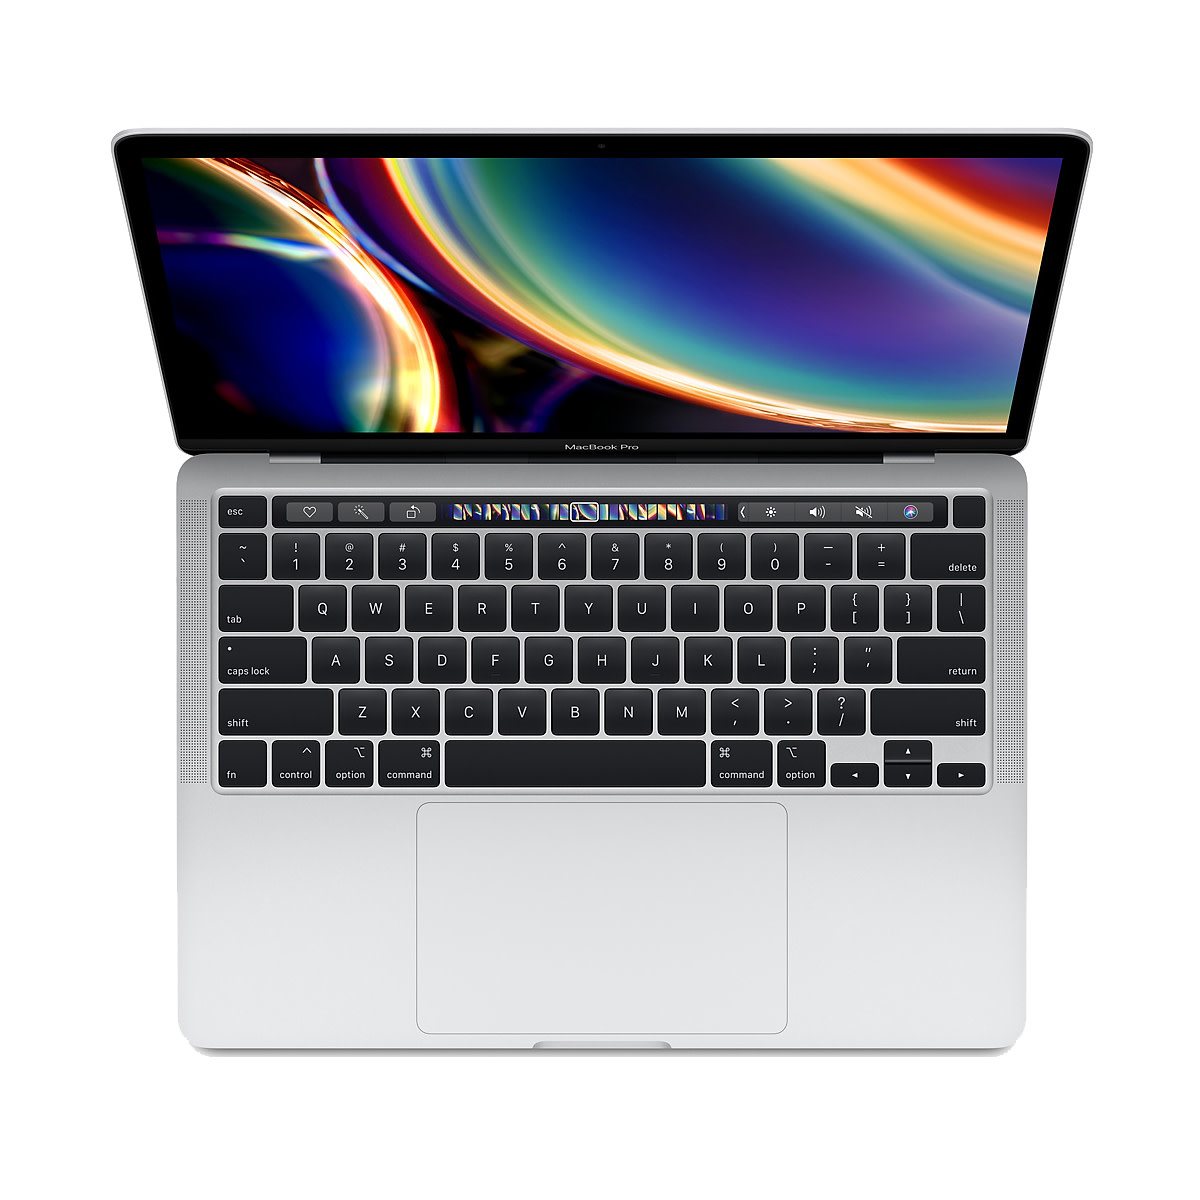 Apple 13-inch MacBook Pro with Touch Bar - Silver 2.0GHz quad-core 10th-generation Intel Core i5 processor, 512GB